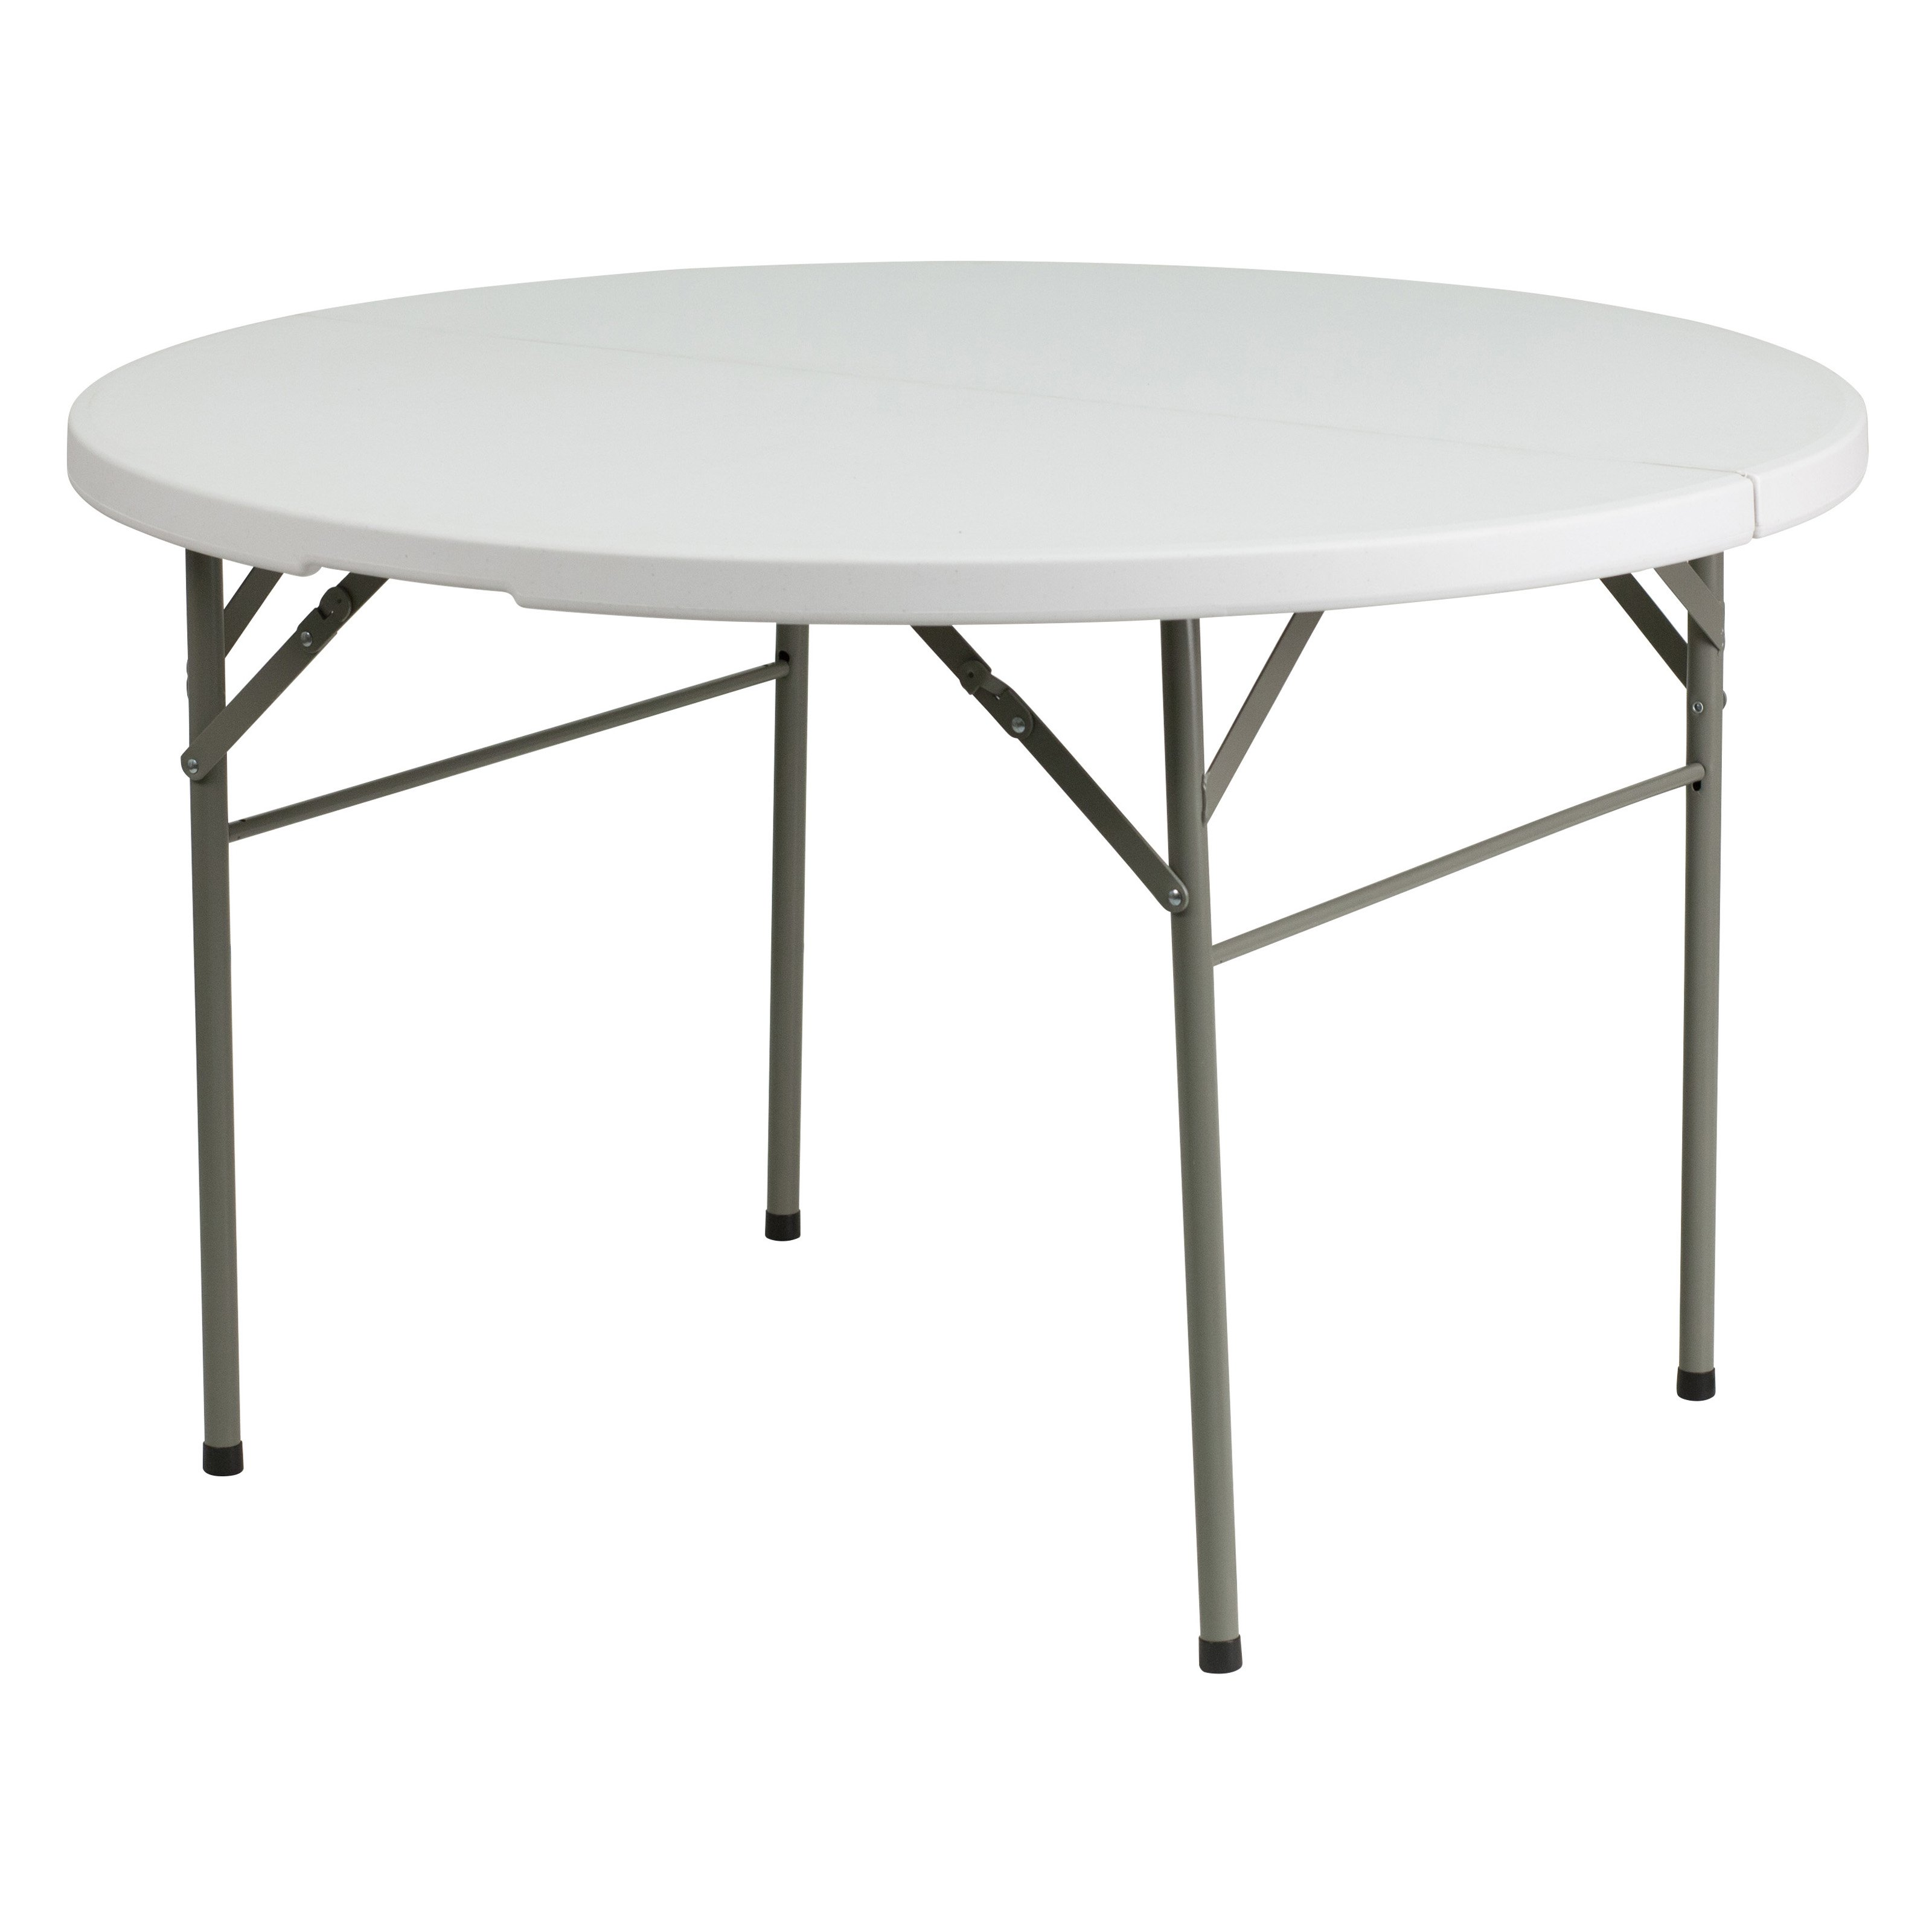 Flash Furniture Square Granite Folding Table in White Walmart